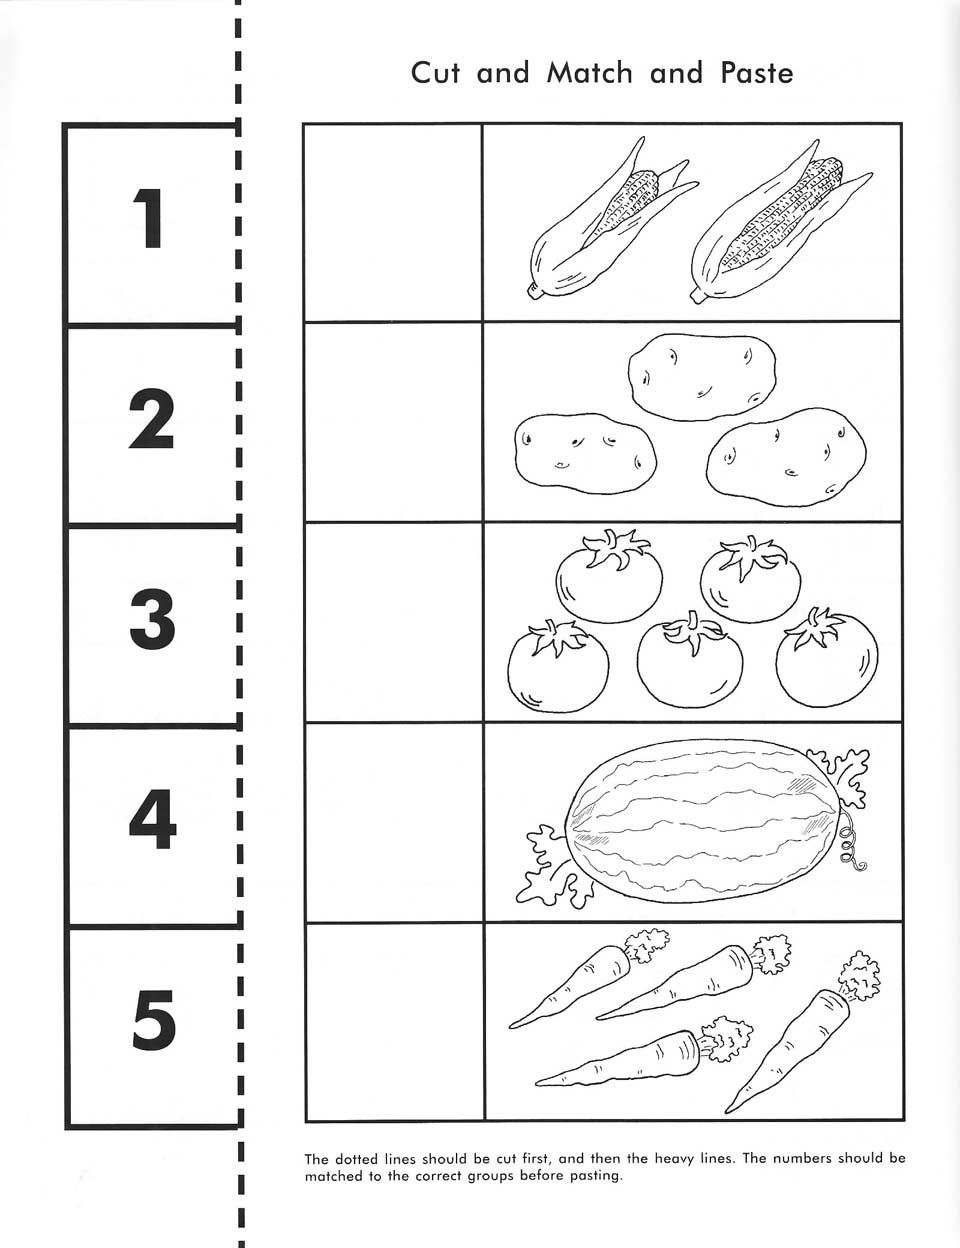 Cut count match and paste Free printable – Cut and Paste Worksheets for Preschoolers